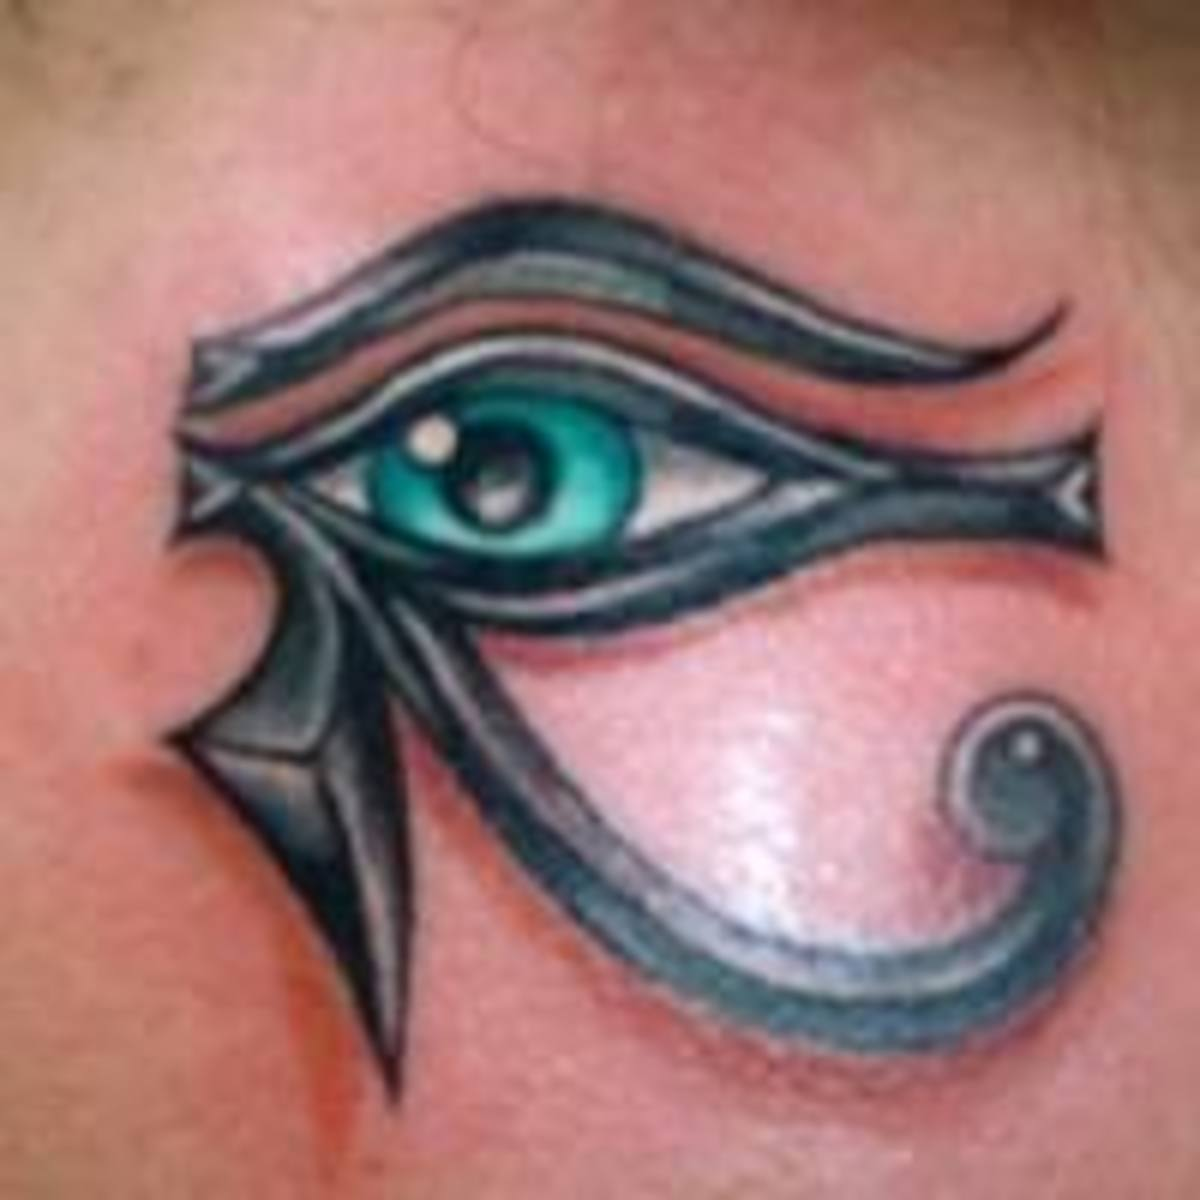 Eye Tattoos And Designs-Eye Tattoo Meanings And Ideas-Eye Tattoo Gallery